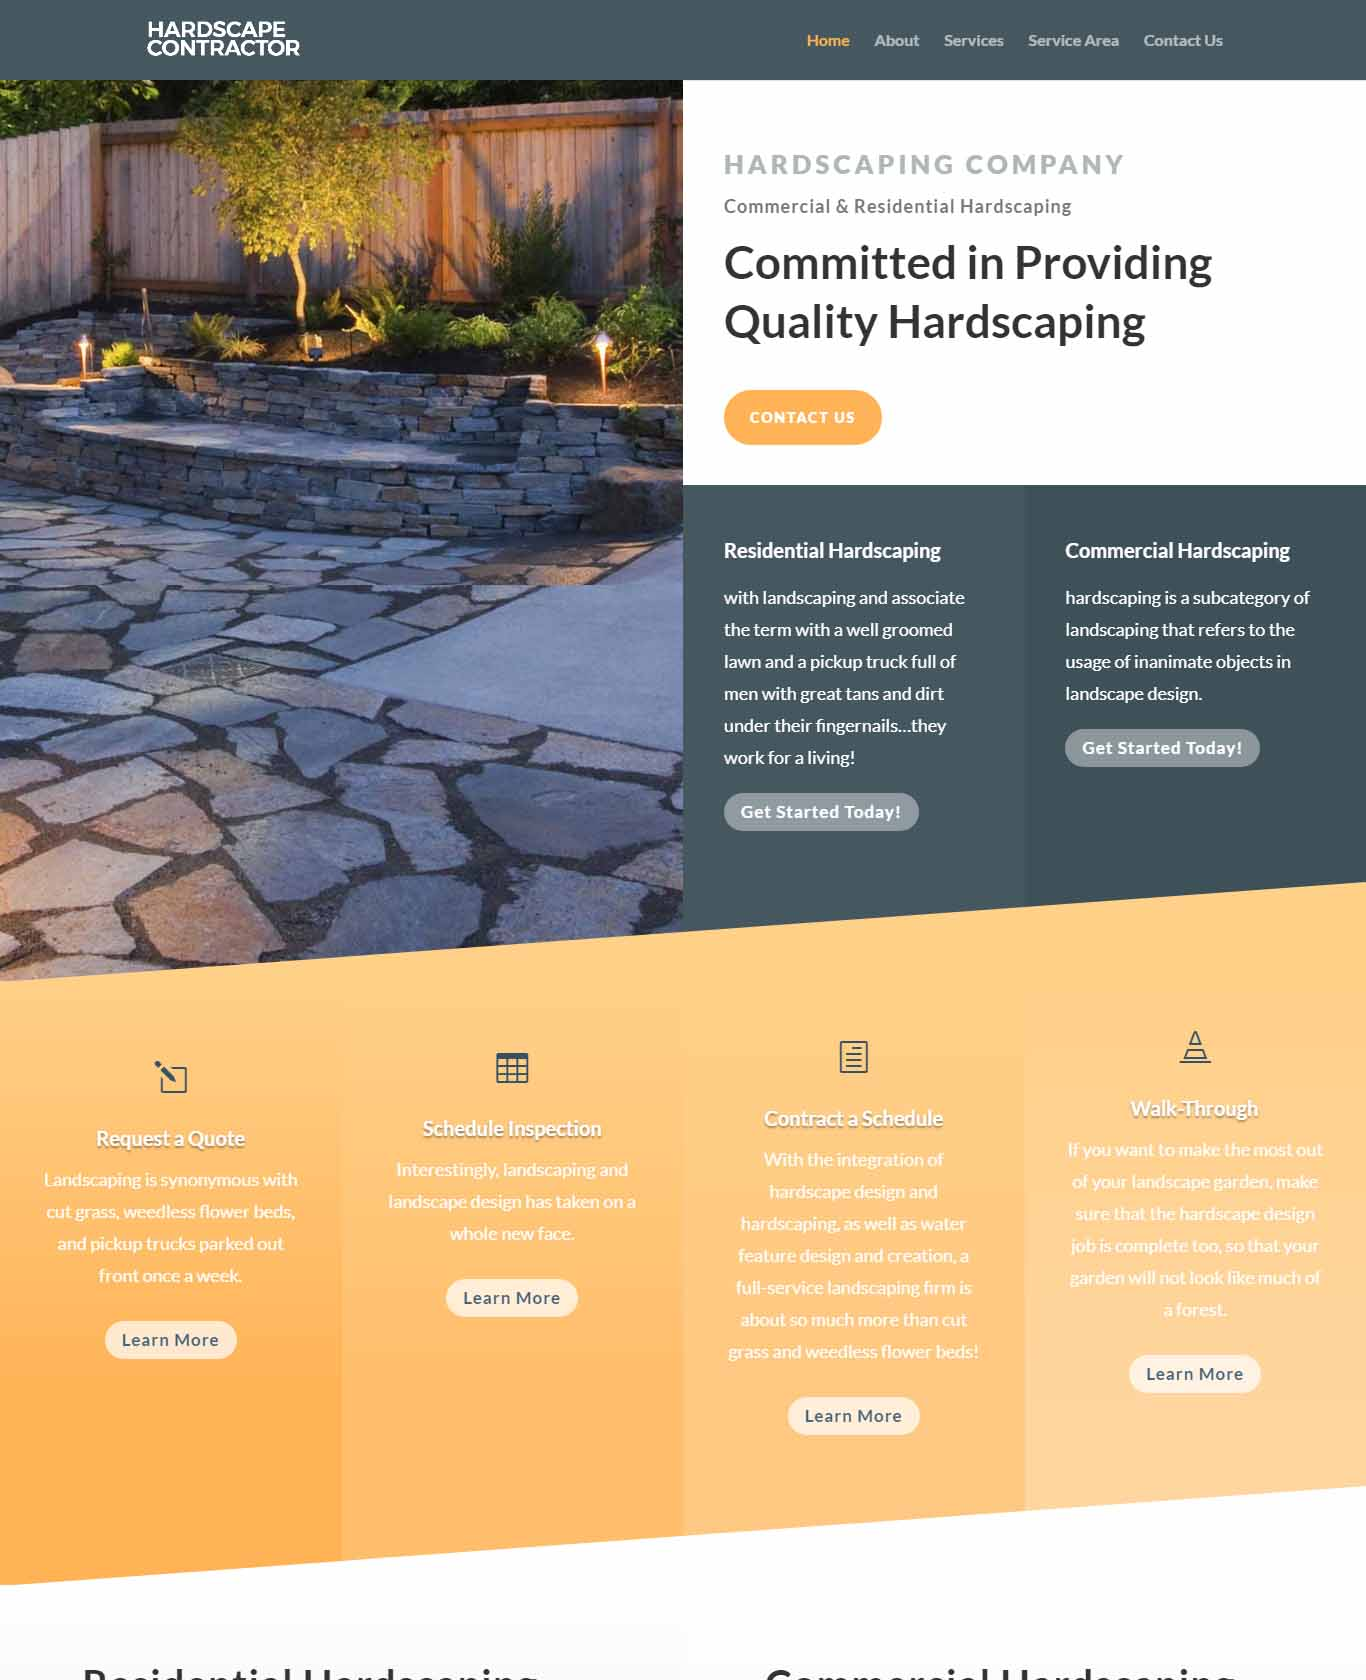 Committed in Providing Quality Hardscaping Website